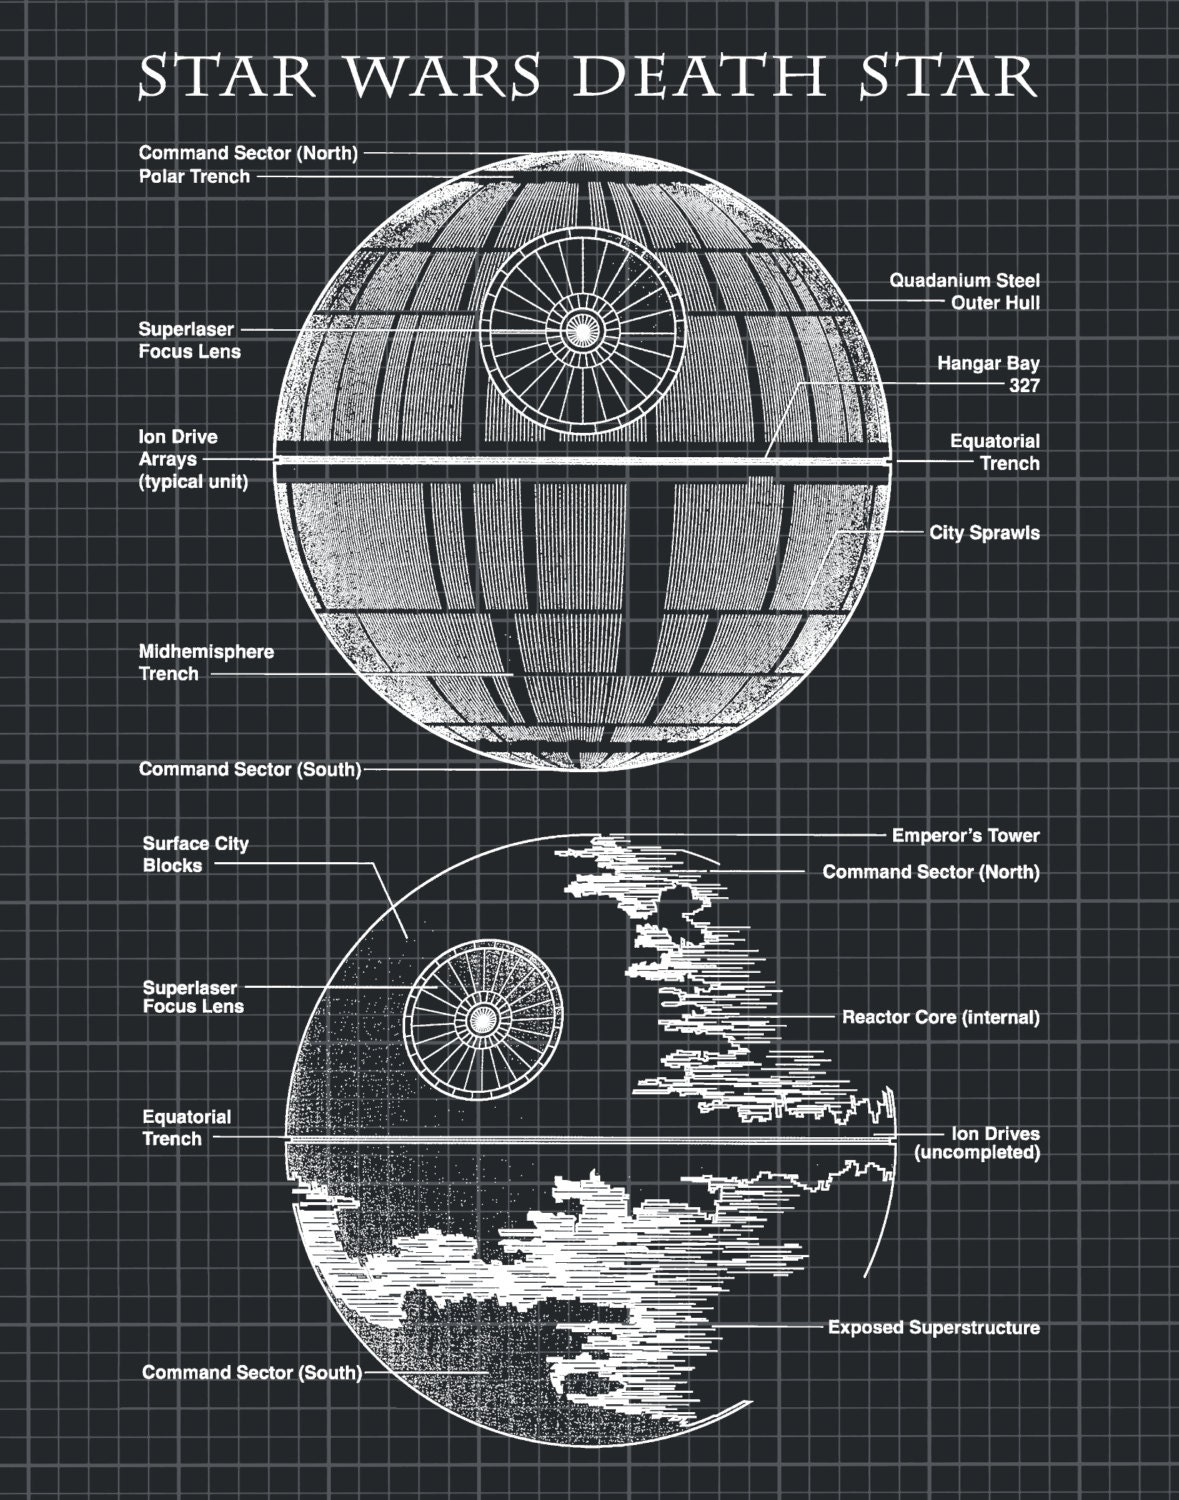 star wars death star drawing art print wall poster. Black Bedroom Furniture Sets. Home Design Ideas